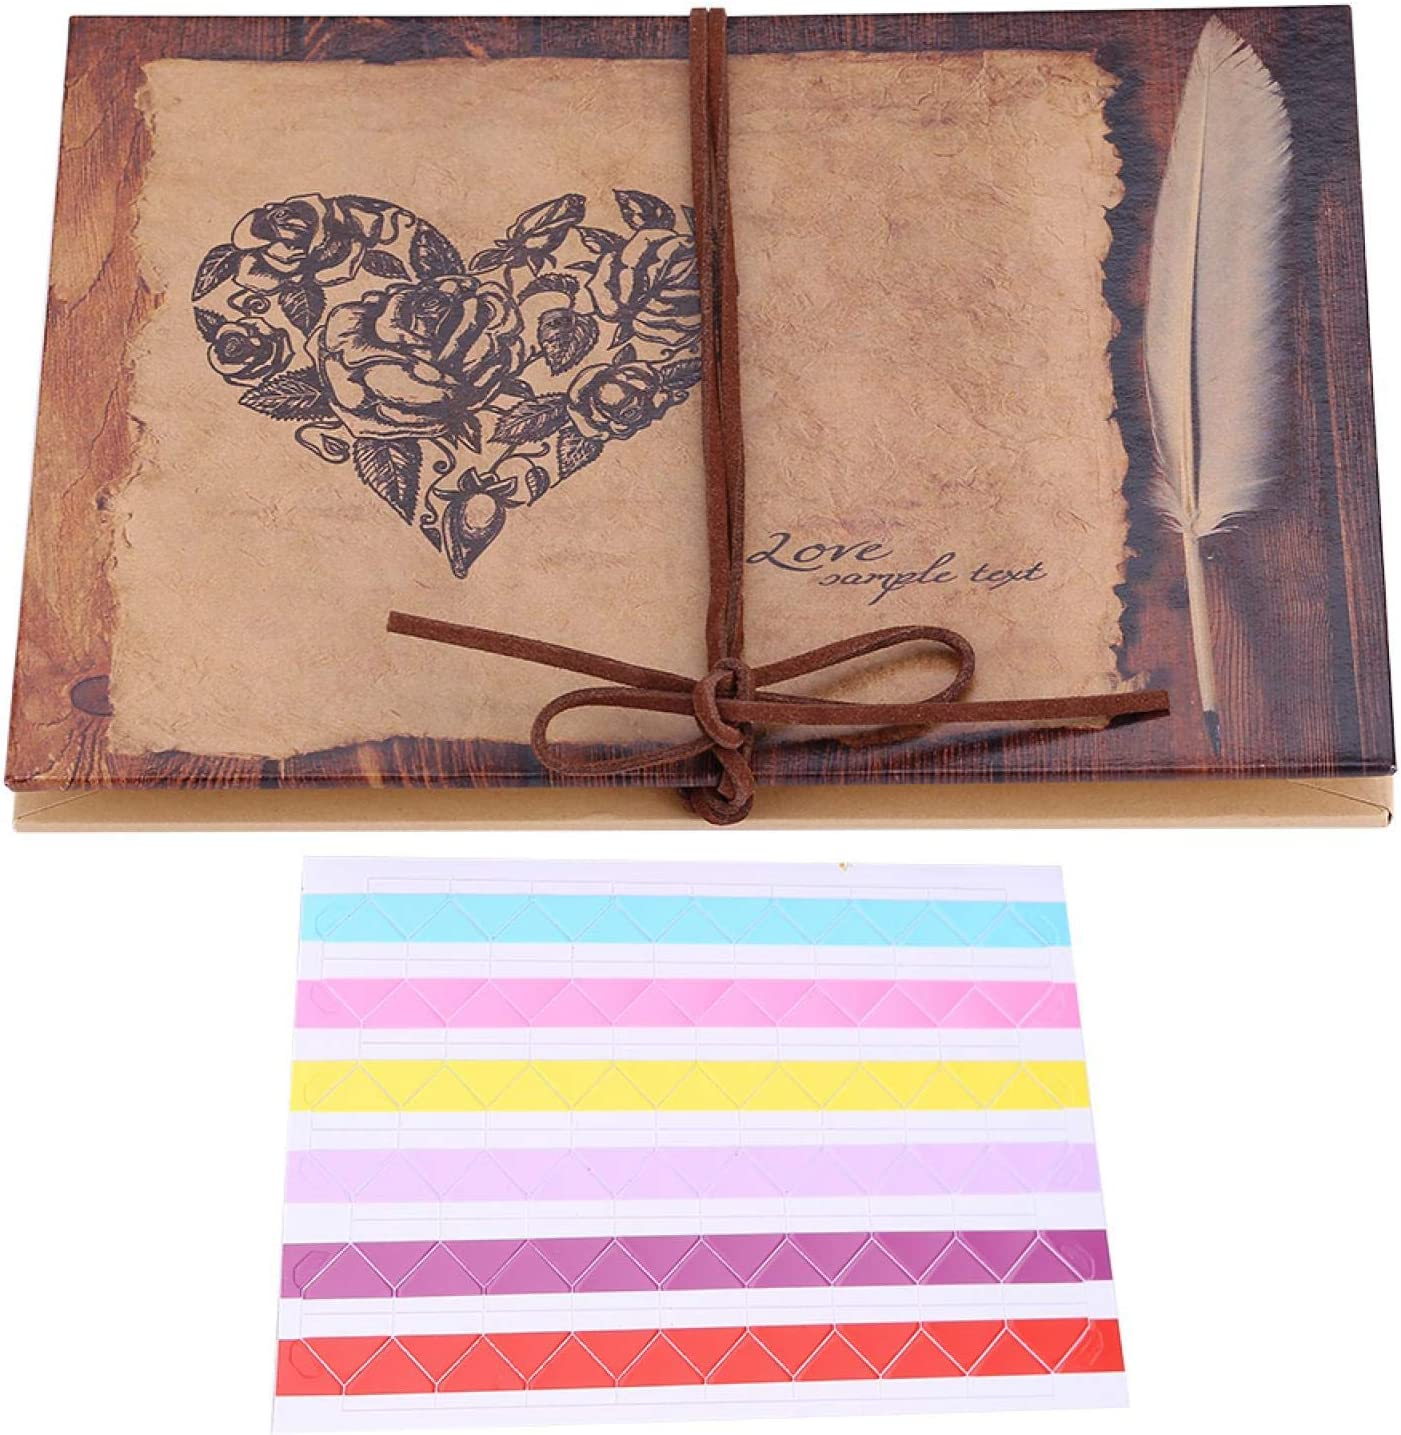 Omabeta 34 Pages 18 Sheets Foldable Style Accordion Albu Vintage Max 67% 25% OFF OFF